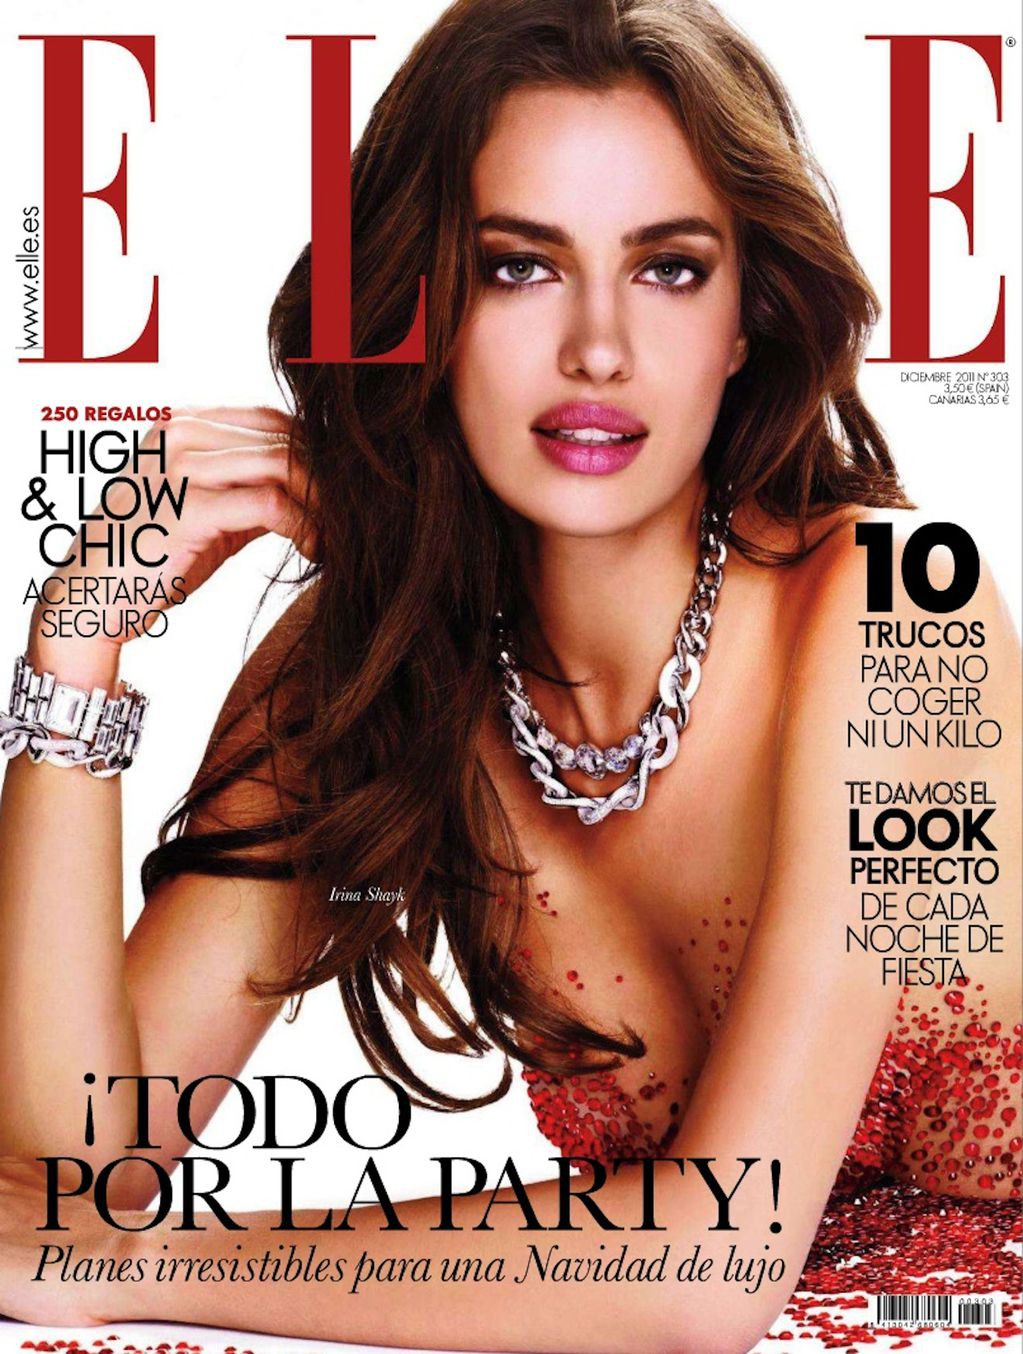 irina-shayk-hot-for-elle-magazine-2-15582500760461494920058.jpg